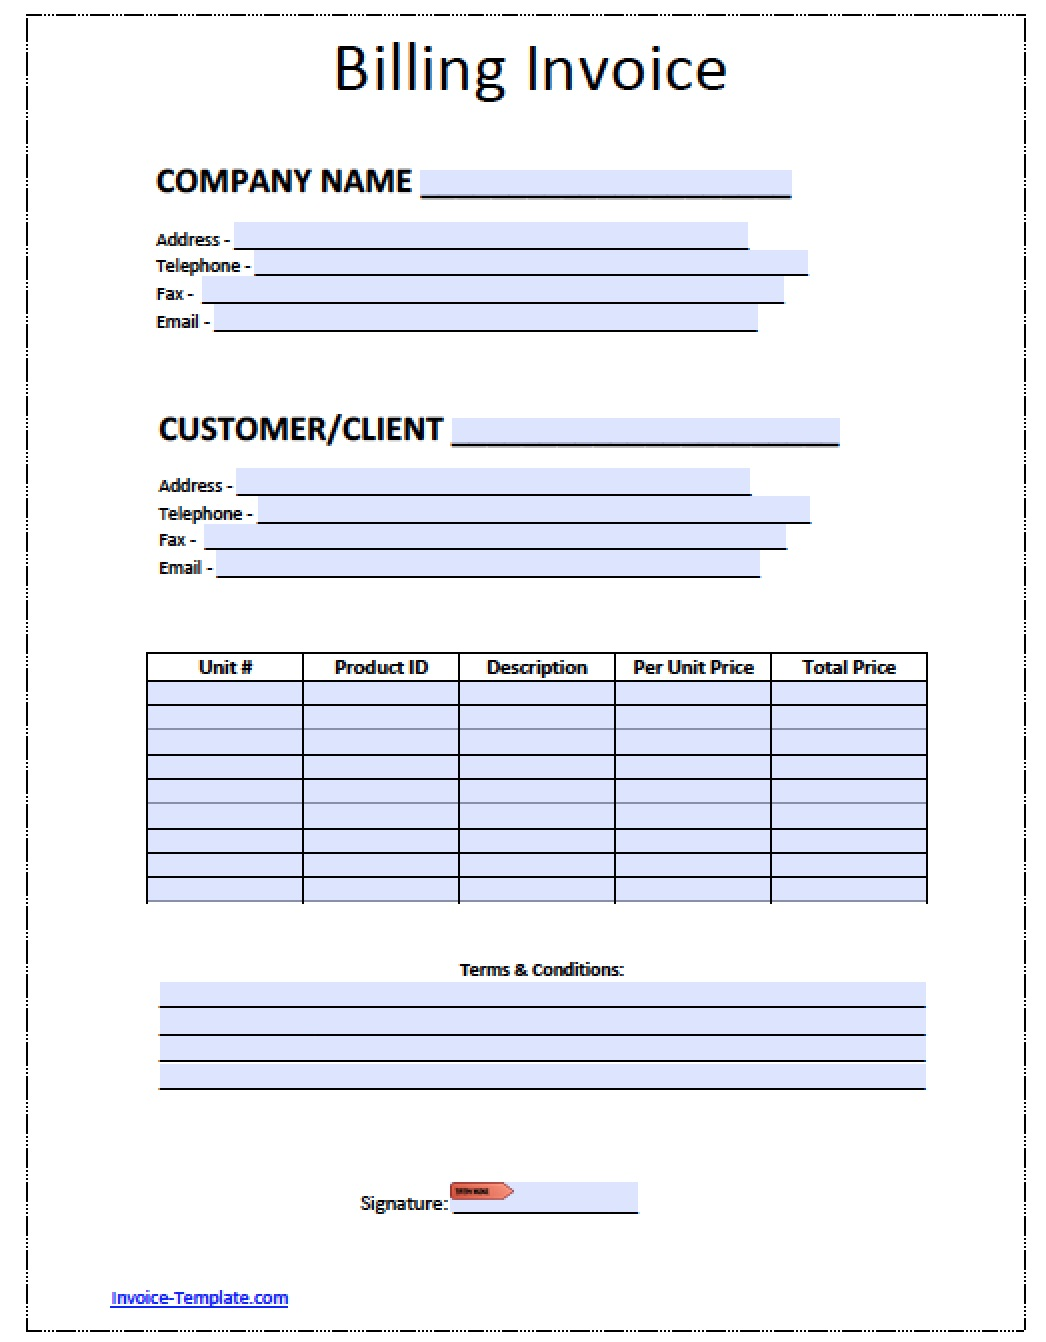 Centralasianshepherdus  Unique Billing Invoice Invoices Faq U Cloudflare Support Billing  With Lovely Free Billing Invoice Template  Excel  Pdf  Word Doc  Billing With Beautiful Verizon Invoice Also How Do I Find Invoice Price On A New Car In Addition Word Document Invoice And Crm With Invoicing As Well As Florida Toll By Plate Invoice Additionally Invoice Pdf Generator From Happytomco With Centralasianshepherdus  Lovely Billing Invoice Invoices Faq U Cloudflare Support Billing  With Beautiful Free Billing Invoice Template  Excel  Pdf  Word Doc  Billing And Unique Verizon Invoice Also How Do I Find Invoice Price On A New Car In Addition Word Document Invoice From Happytomco